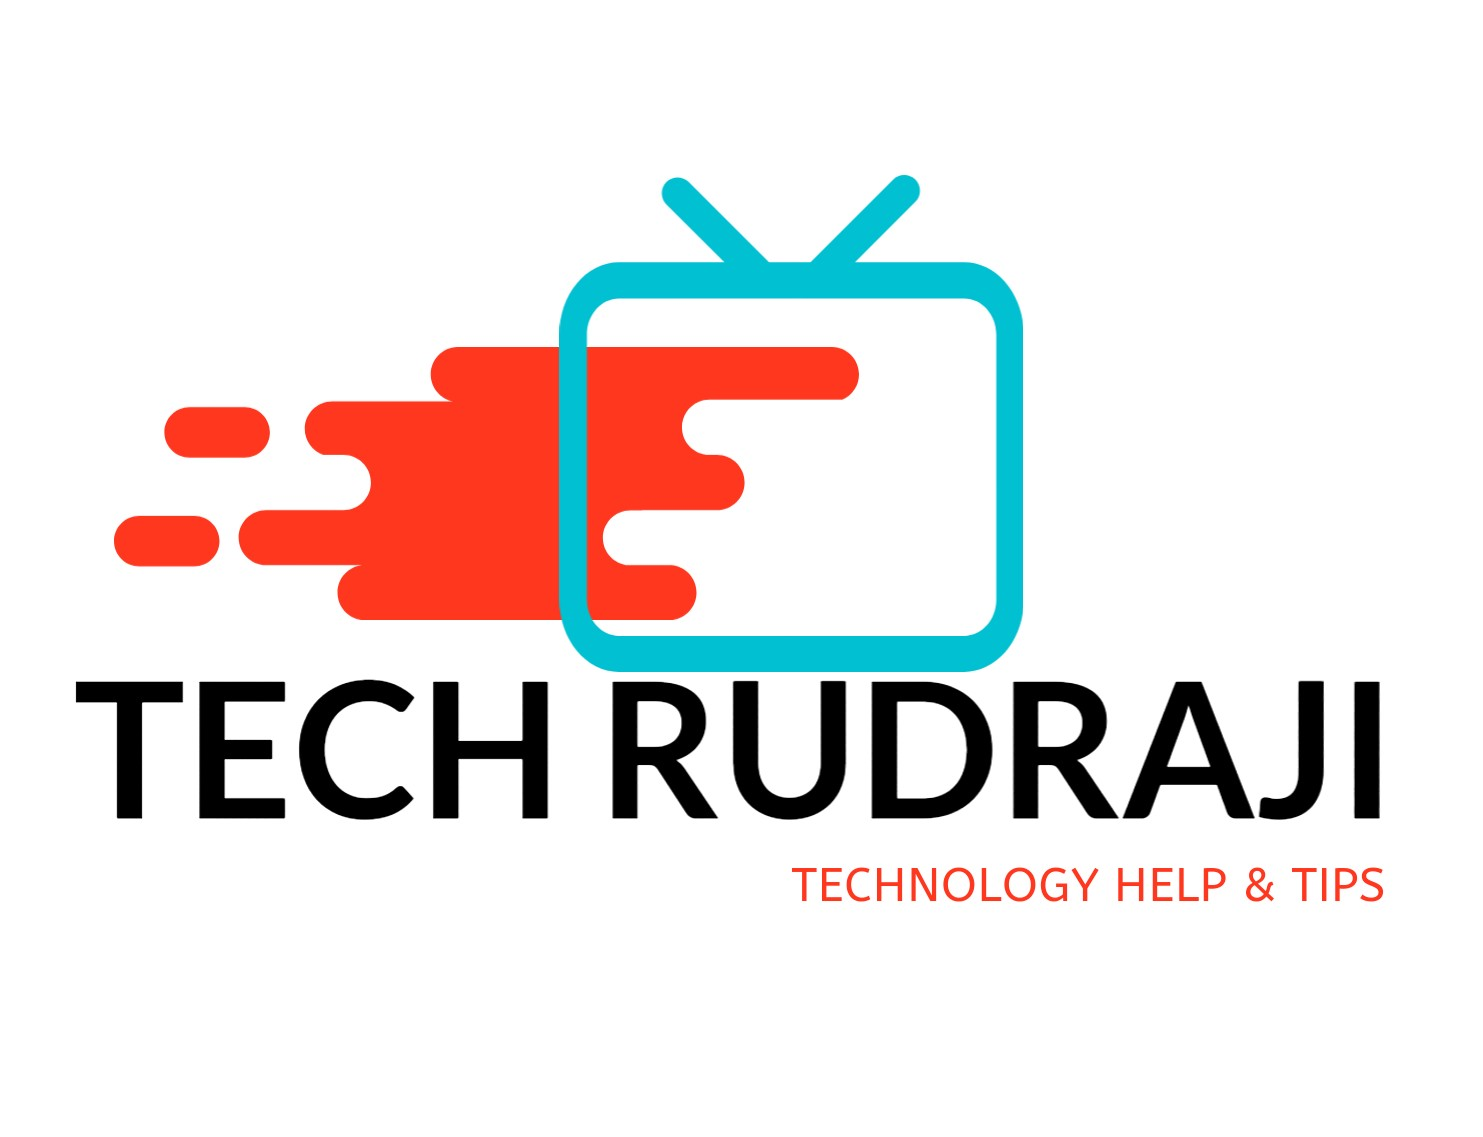 techrudraji-technology tips and help